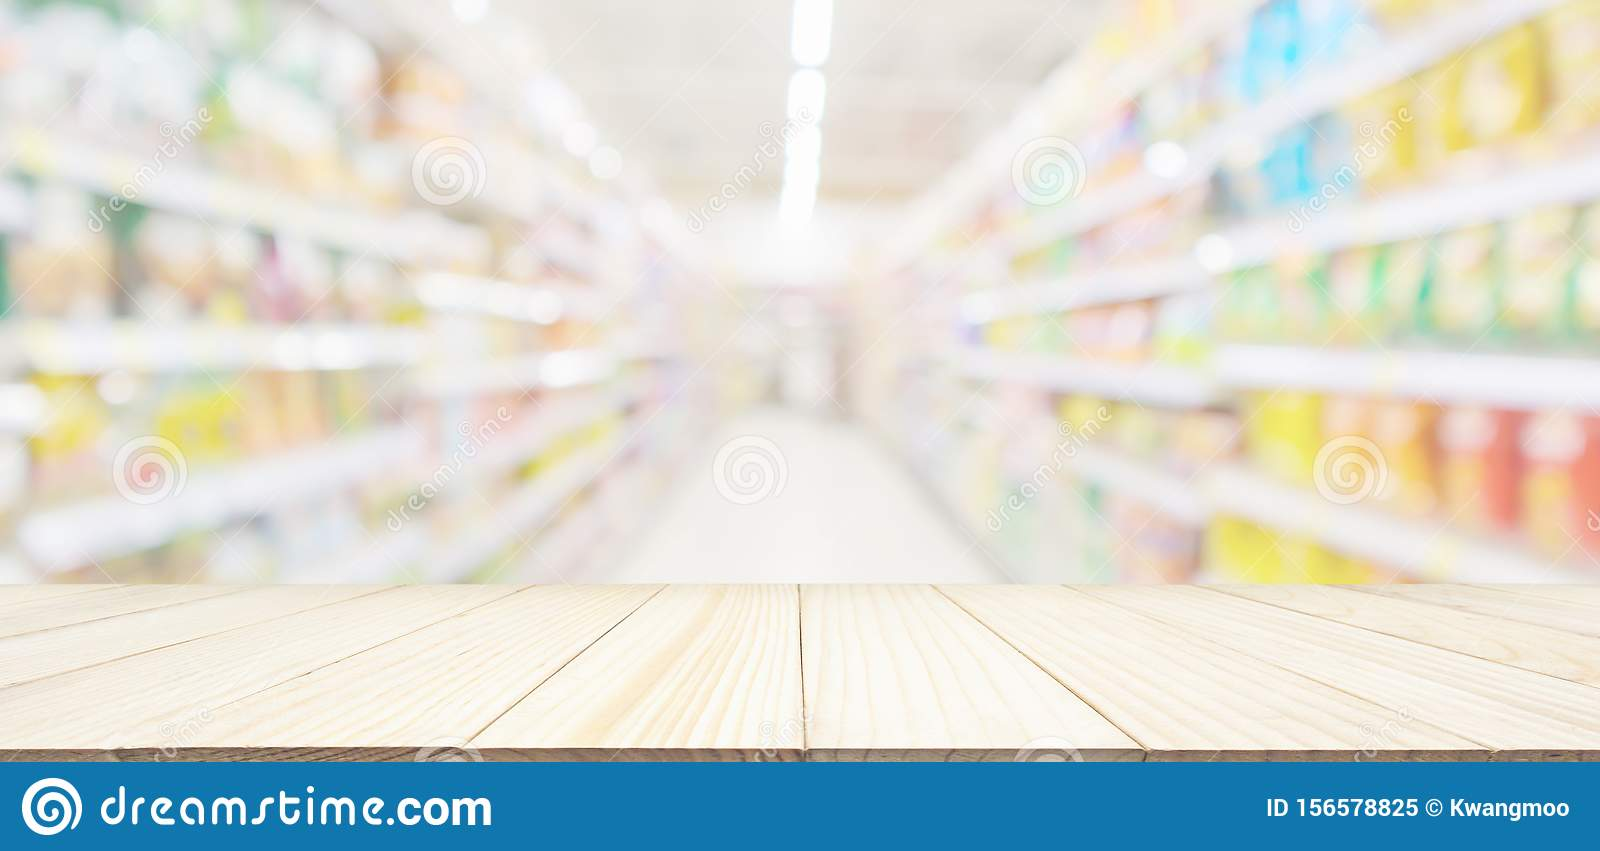 Empty wood table top with abstract supermarket aisle interior blurred defocused background